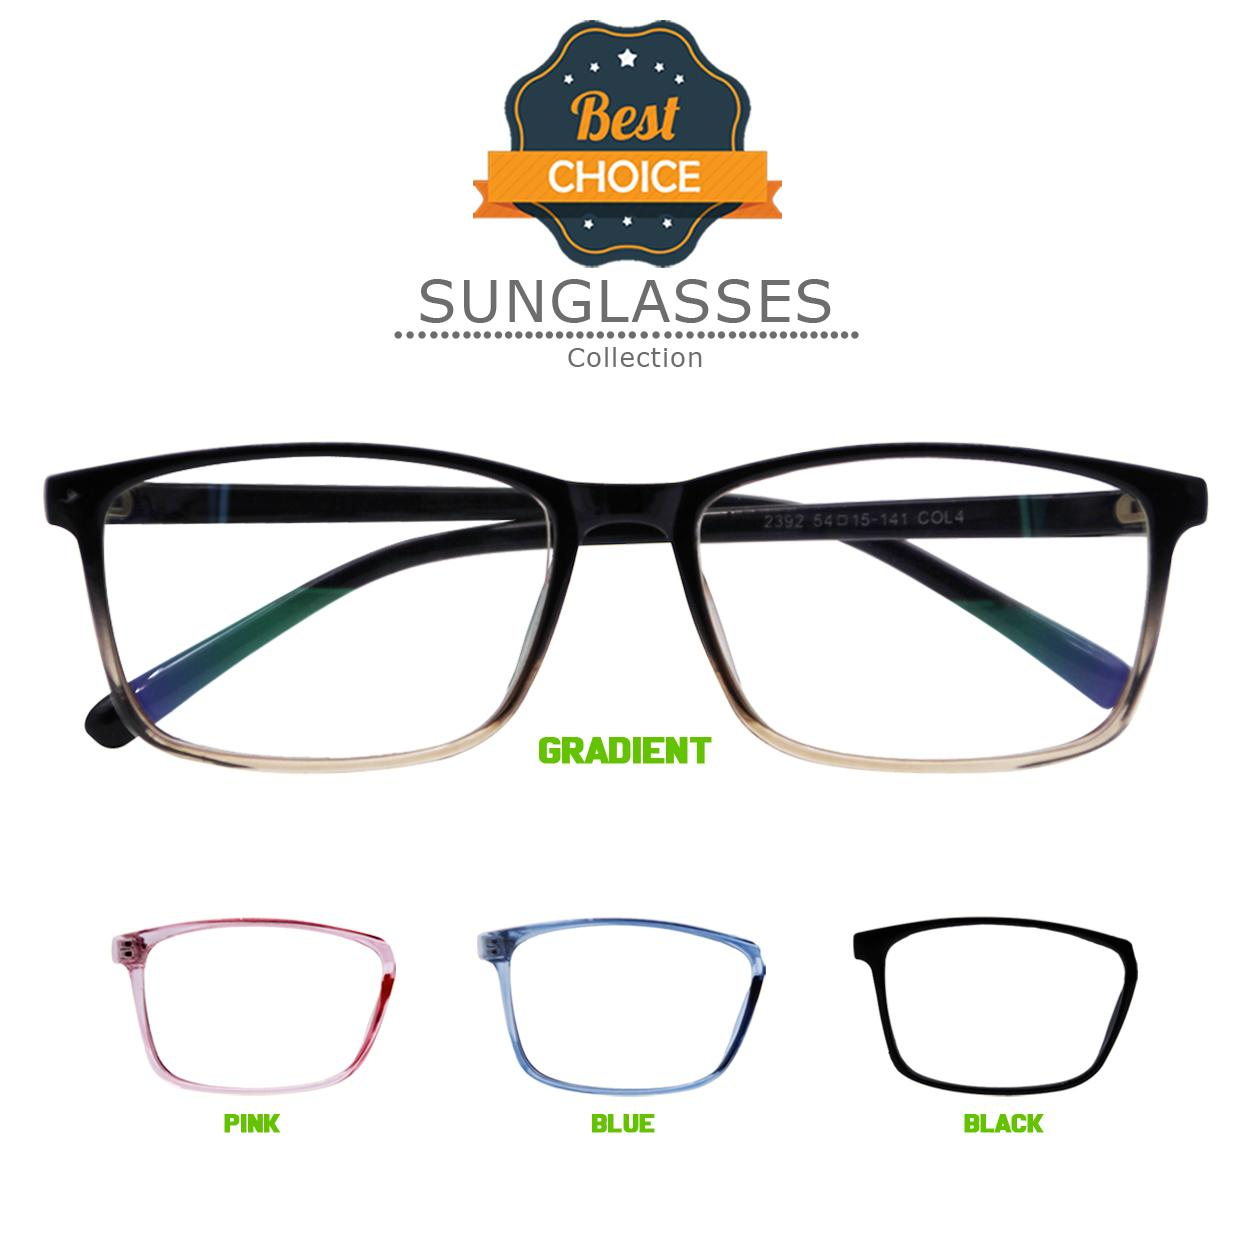 b4b5c6f5e5b Computer Eyeglasses for sale - Glasses for Computers online brands ...